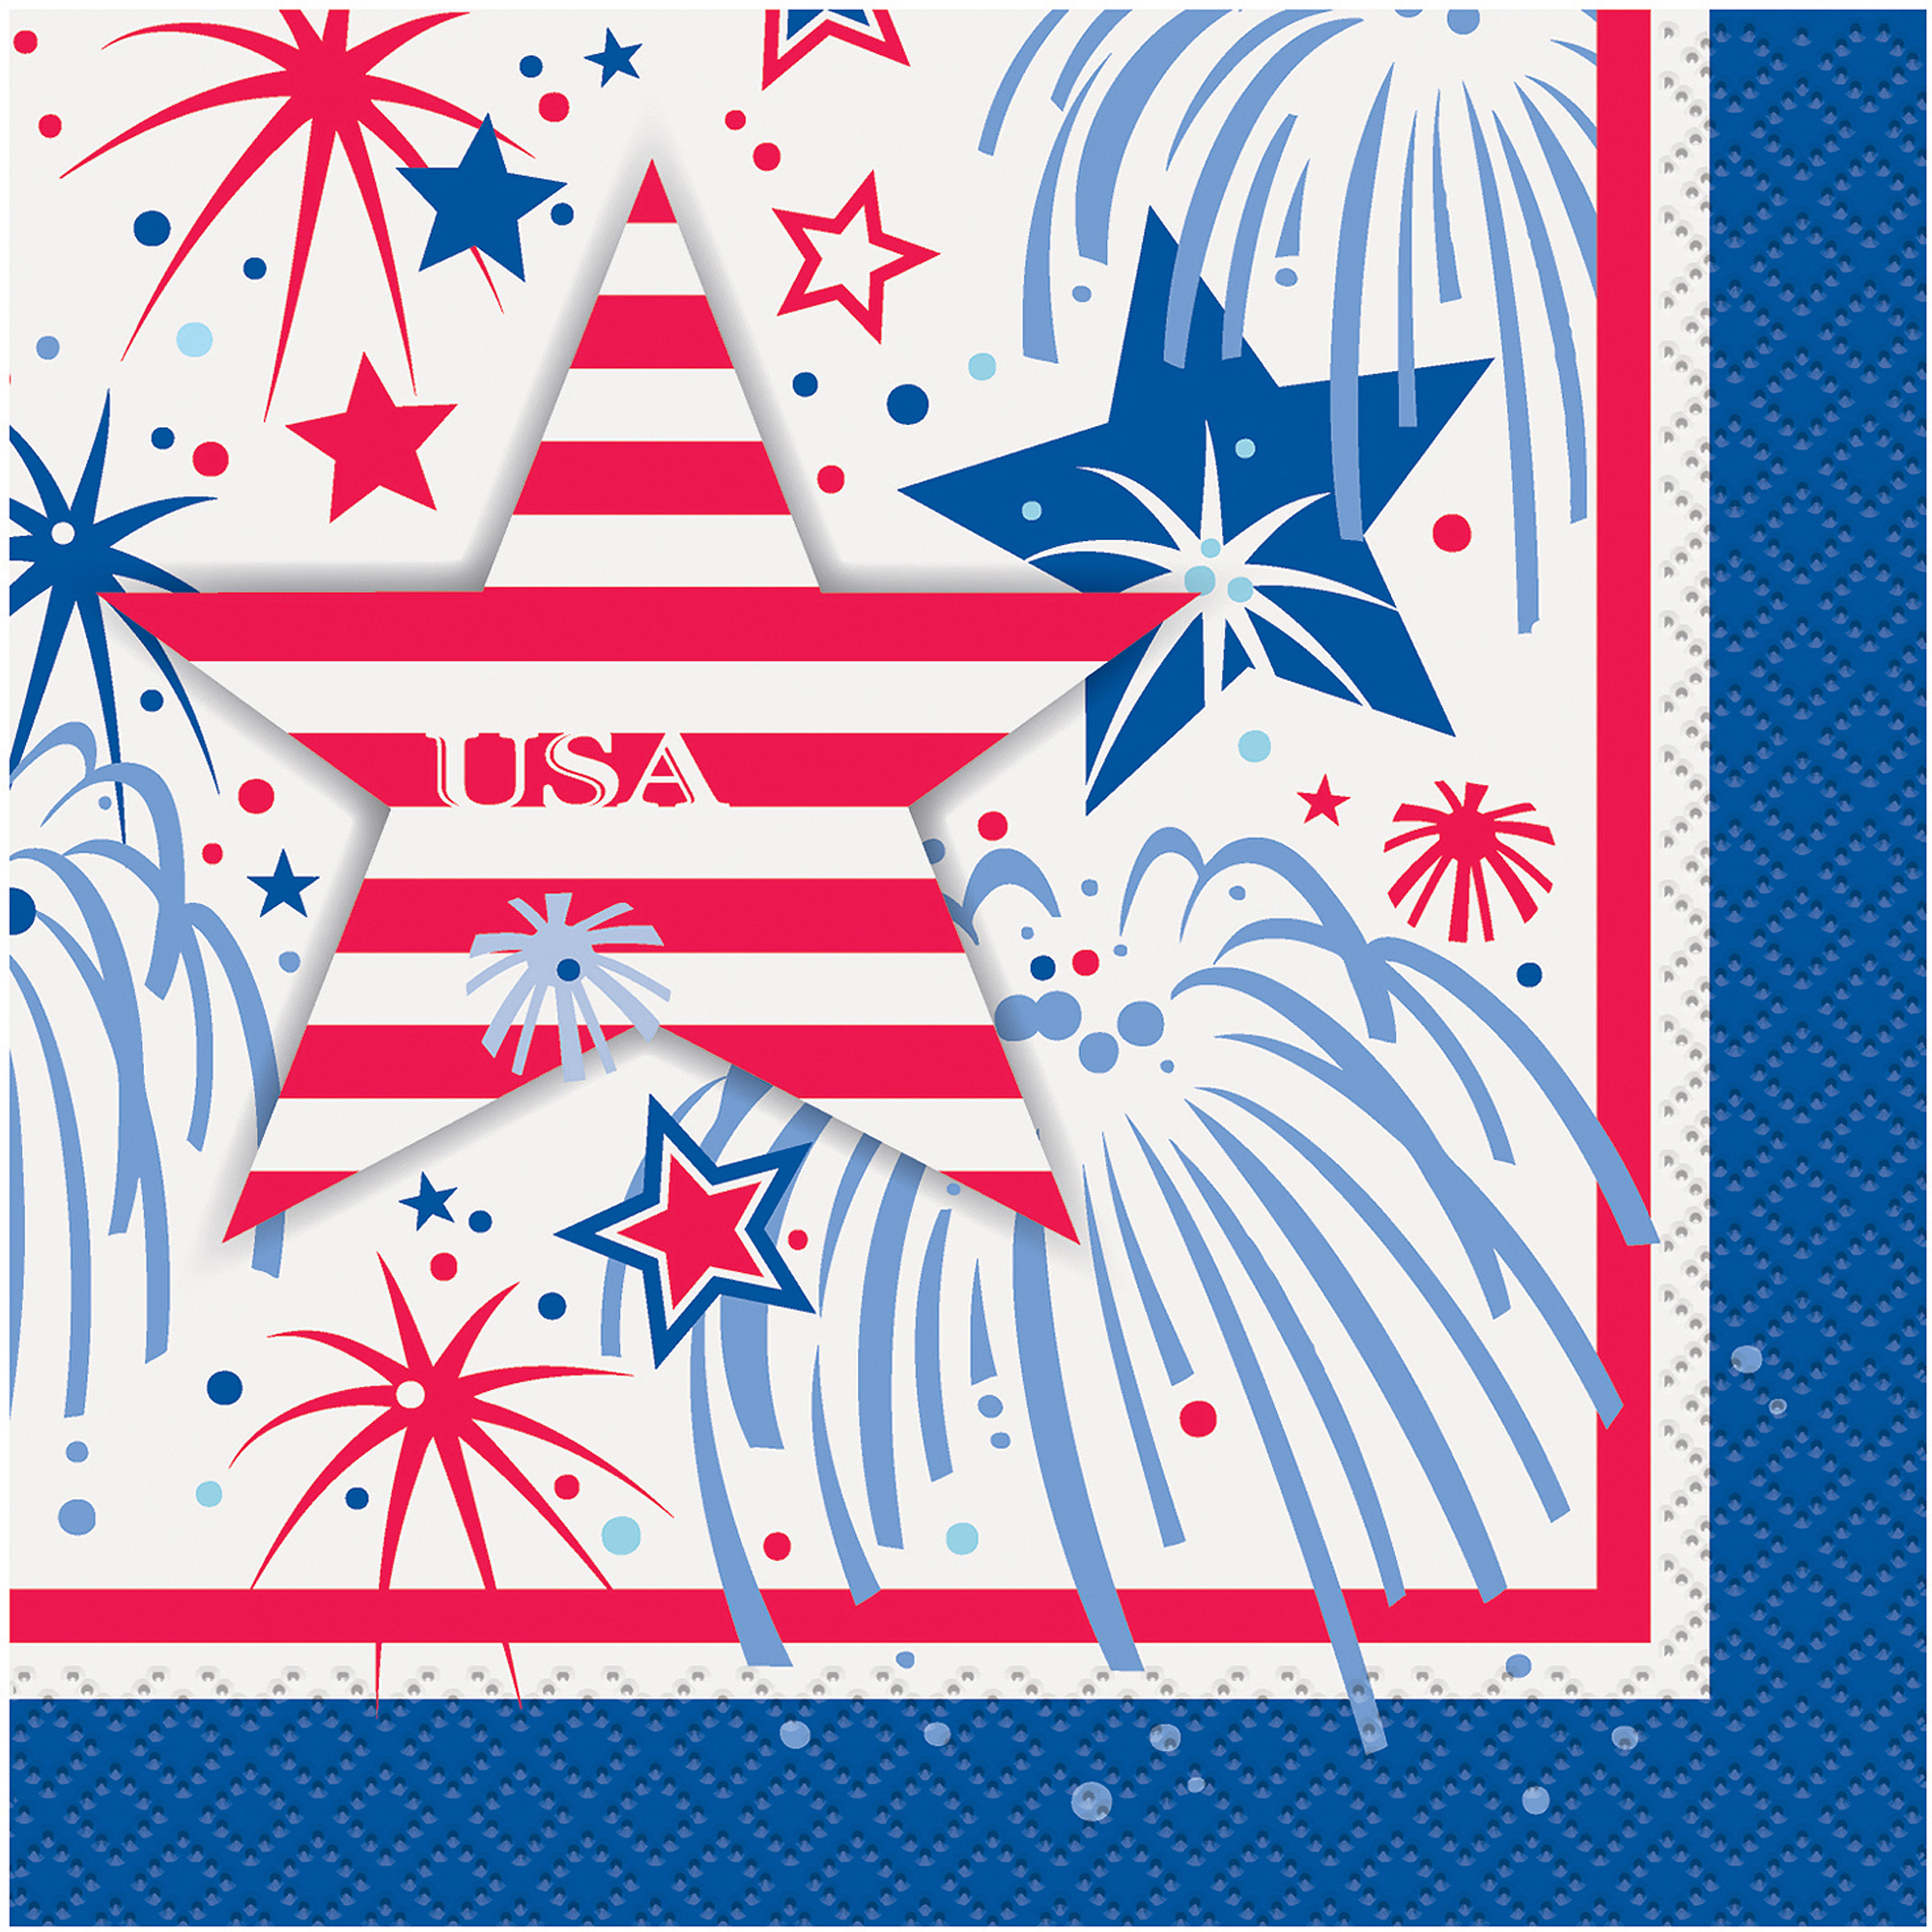 4th of July Fireworks Cocktail Napkins, 5.5 in, Red White and Blue, 16ct